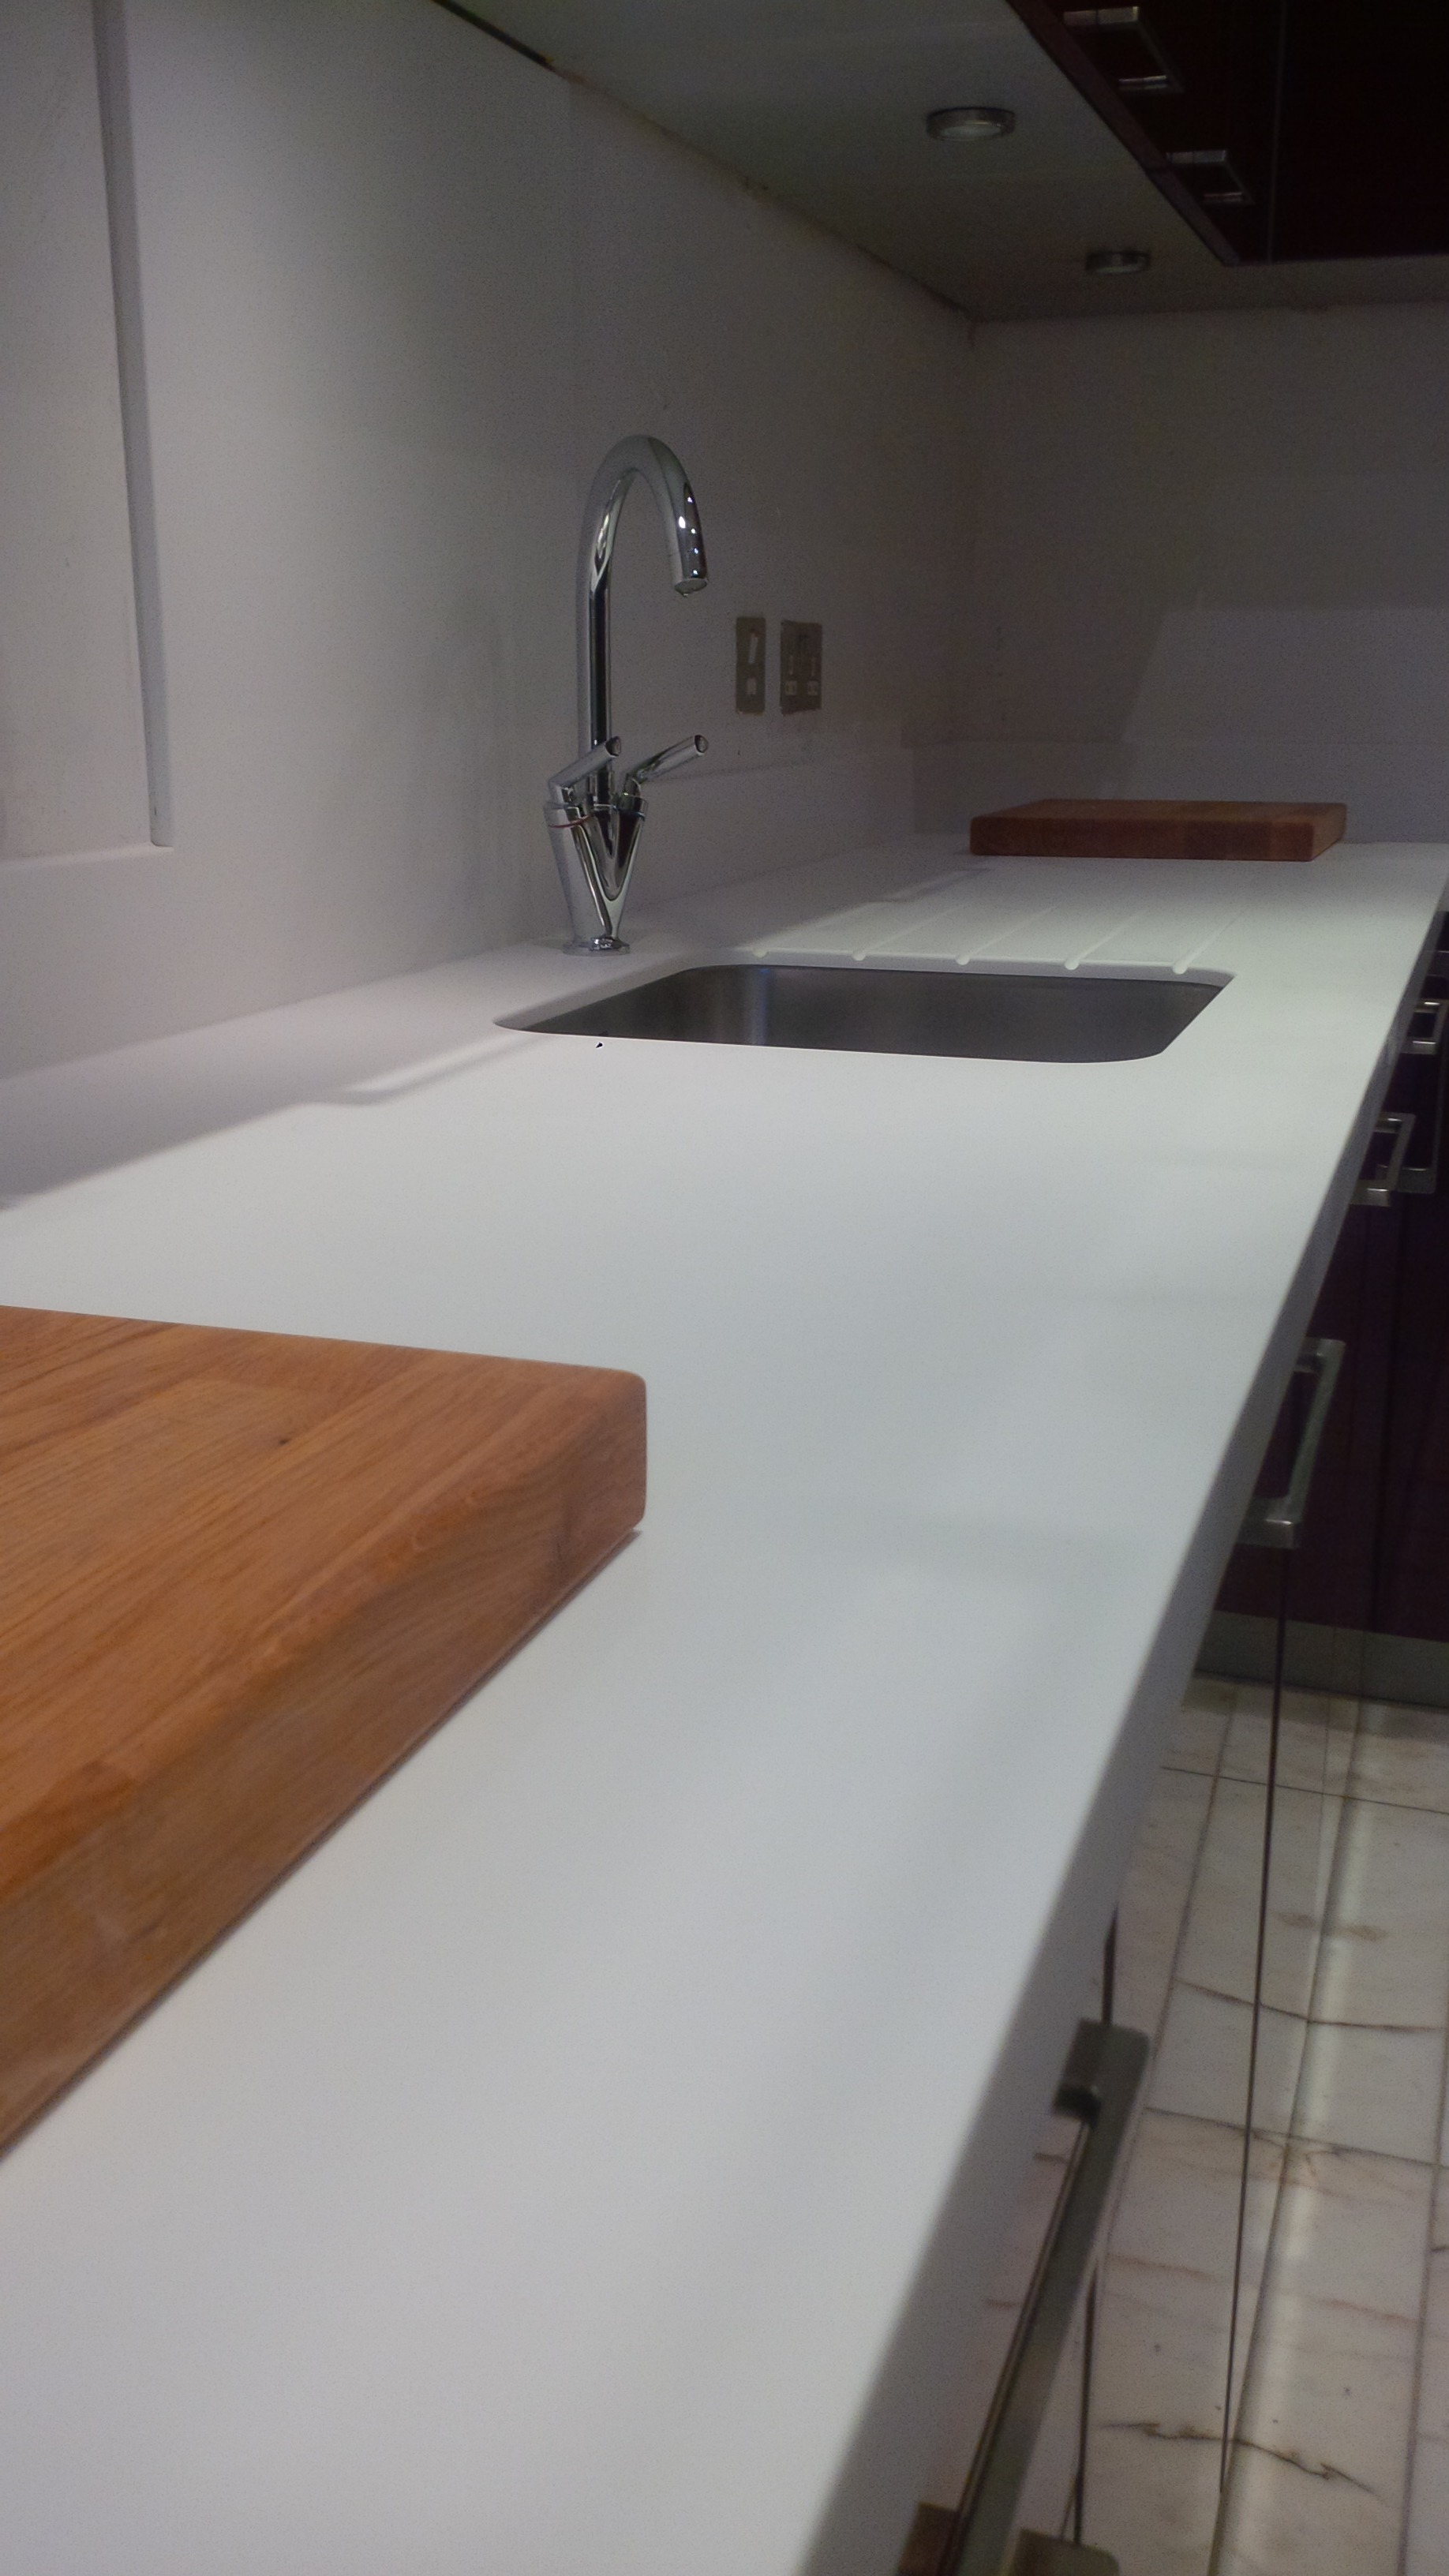 Replacement of granite worktops and upstands to glacier white corian and fitting of stainless steel  sink, by Designed Bespoke Joinery 1